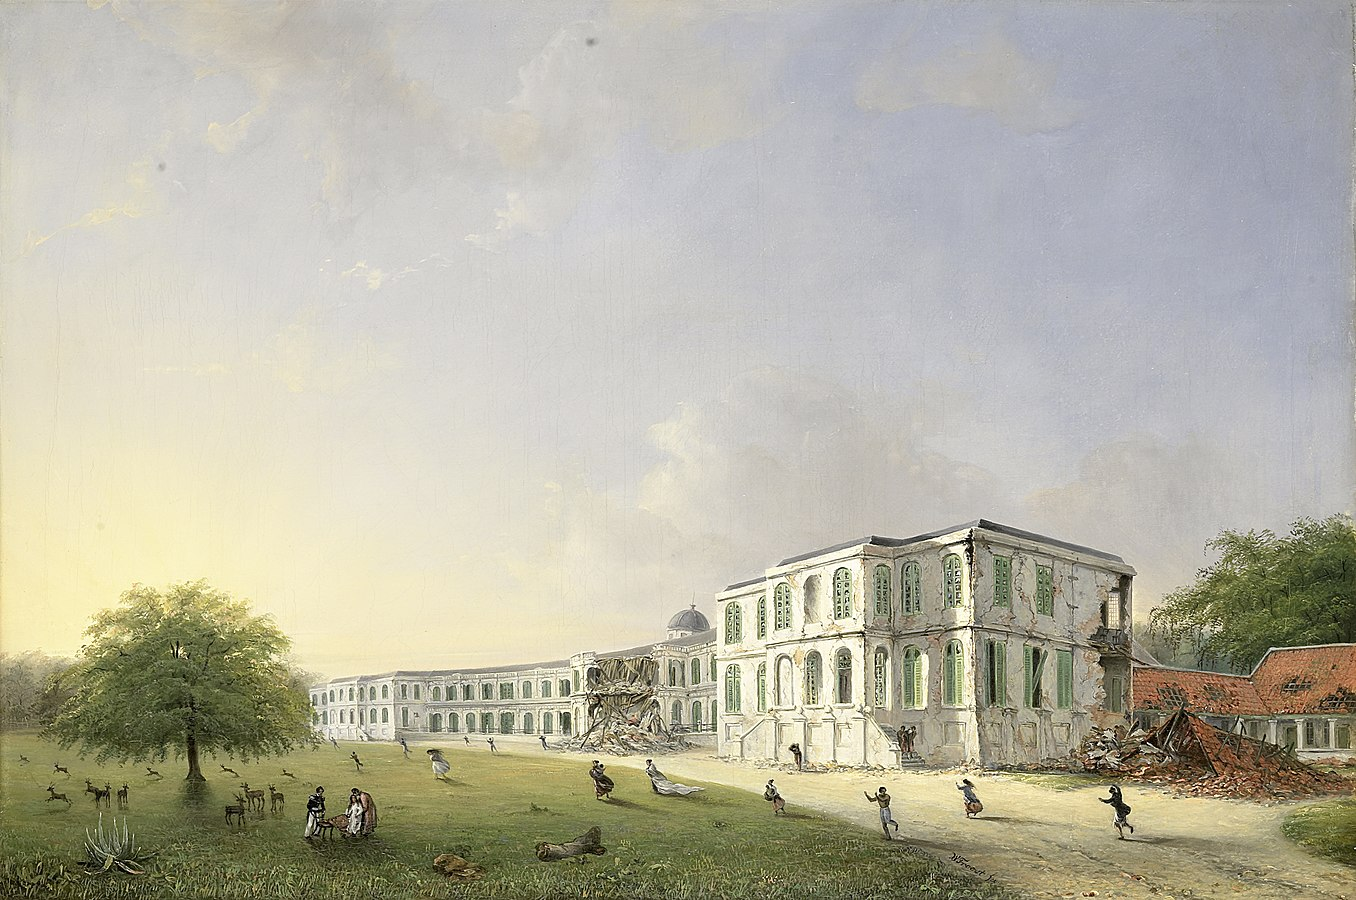 Front View of Buitenzorg Palace after the Earthquake of 10 October 1834